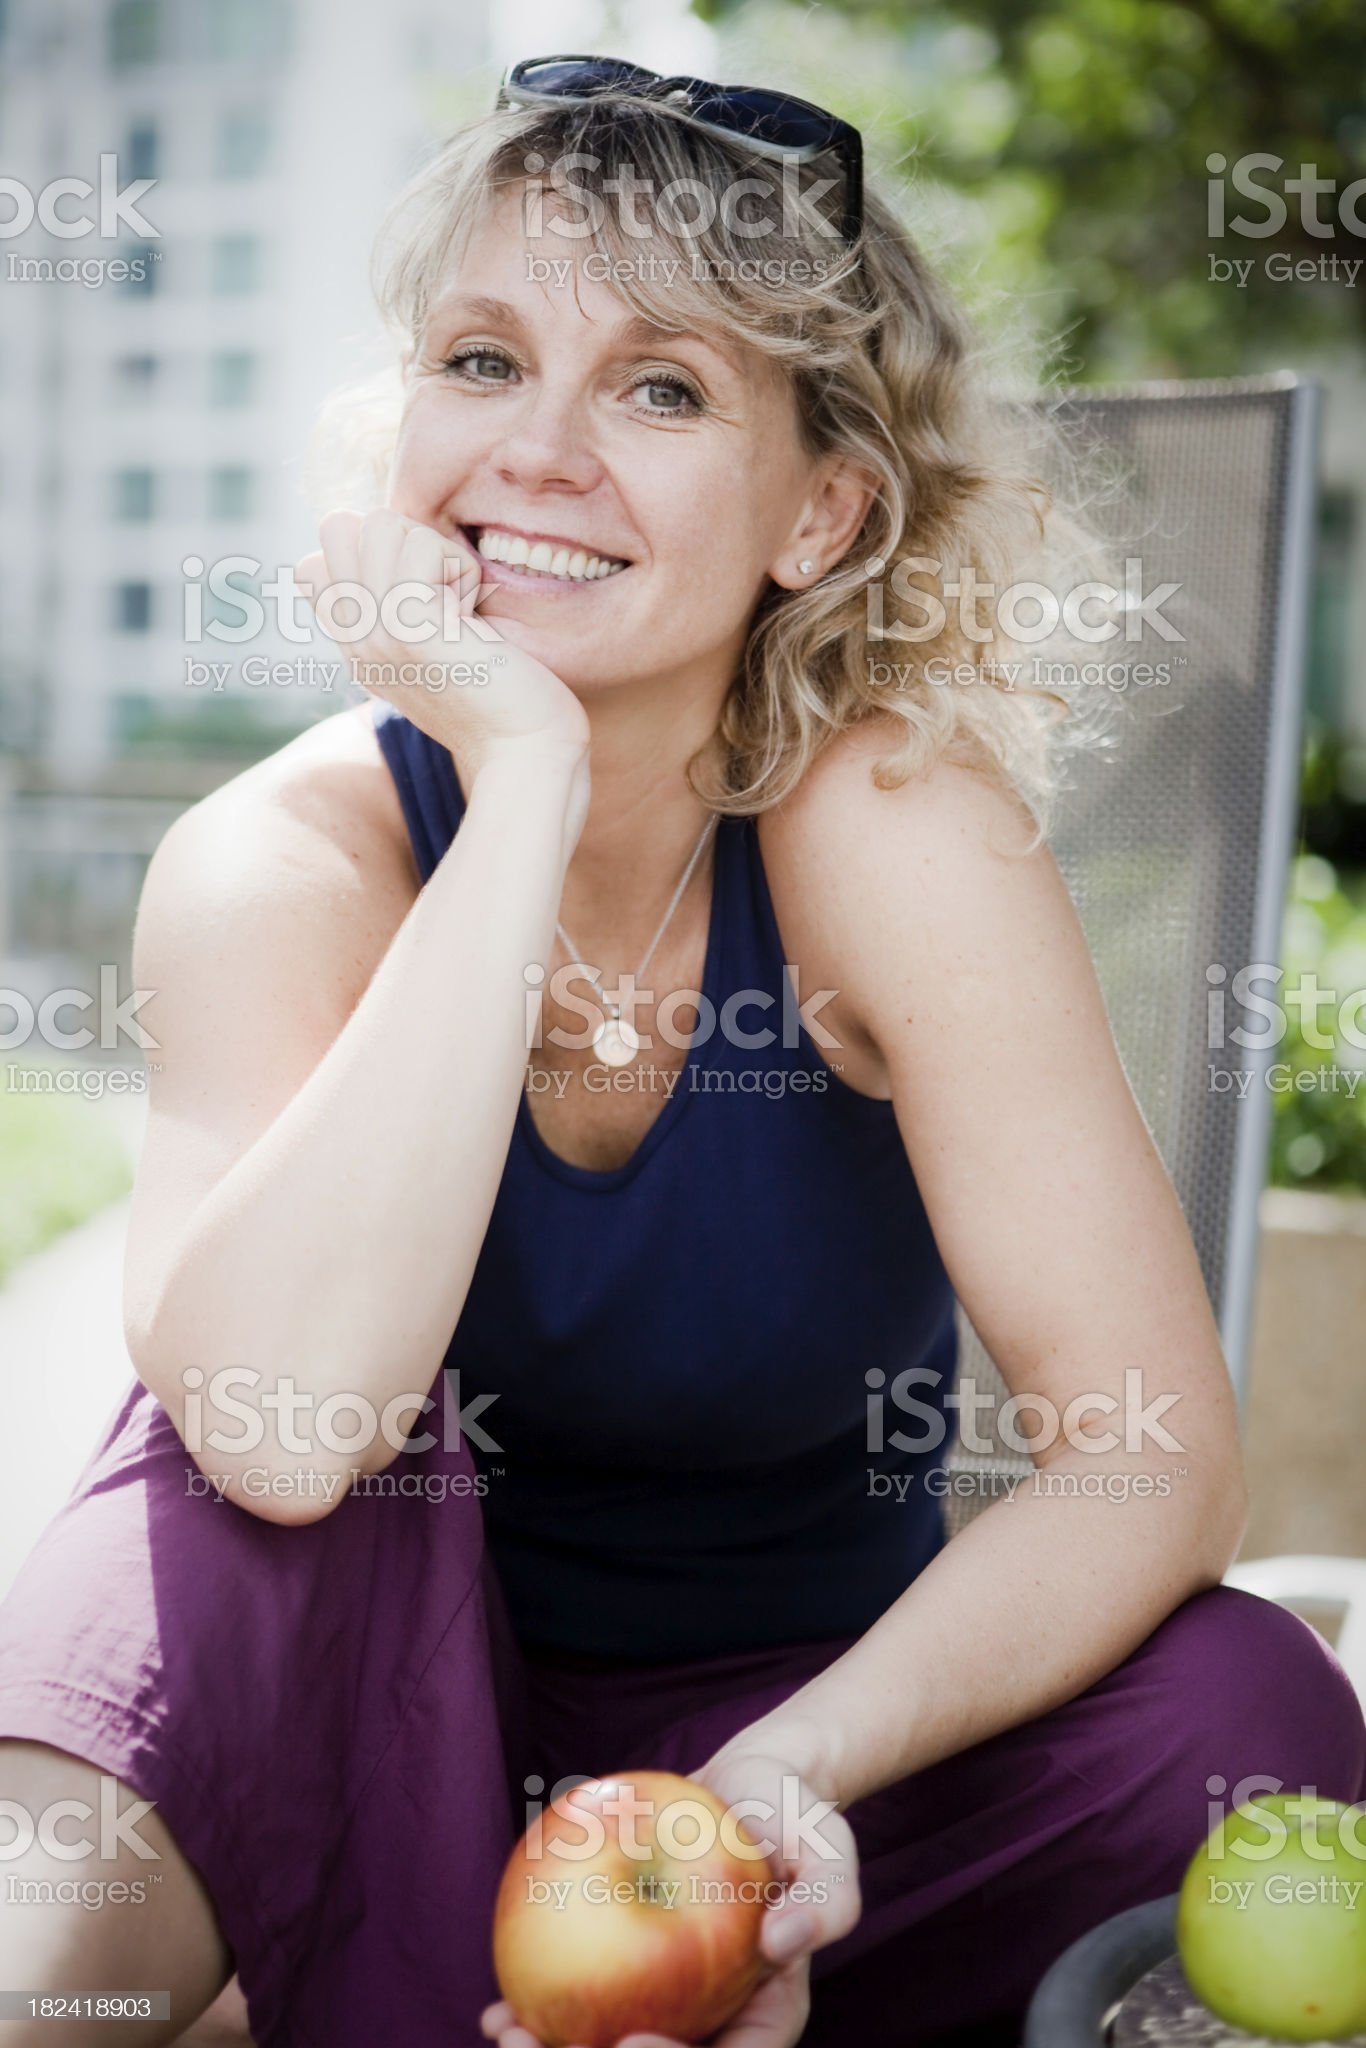 Healthy living royalty-free stock photo